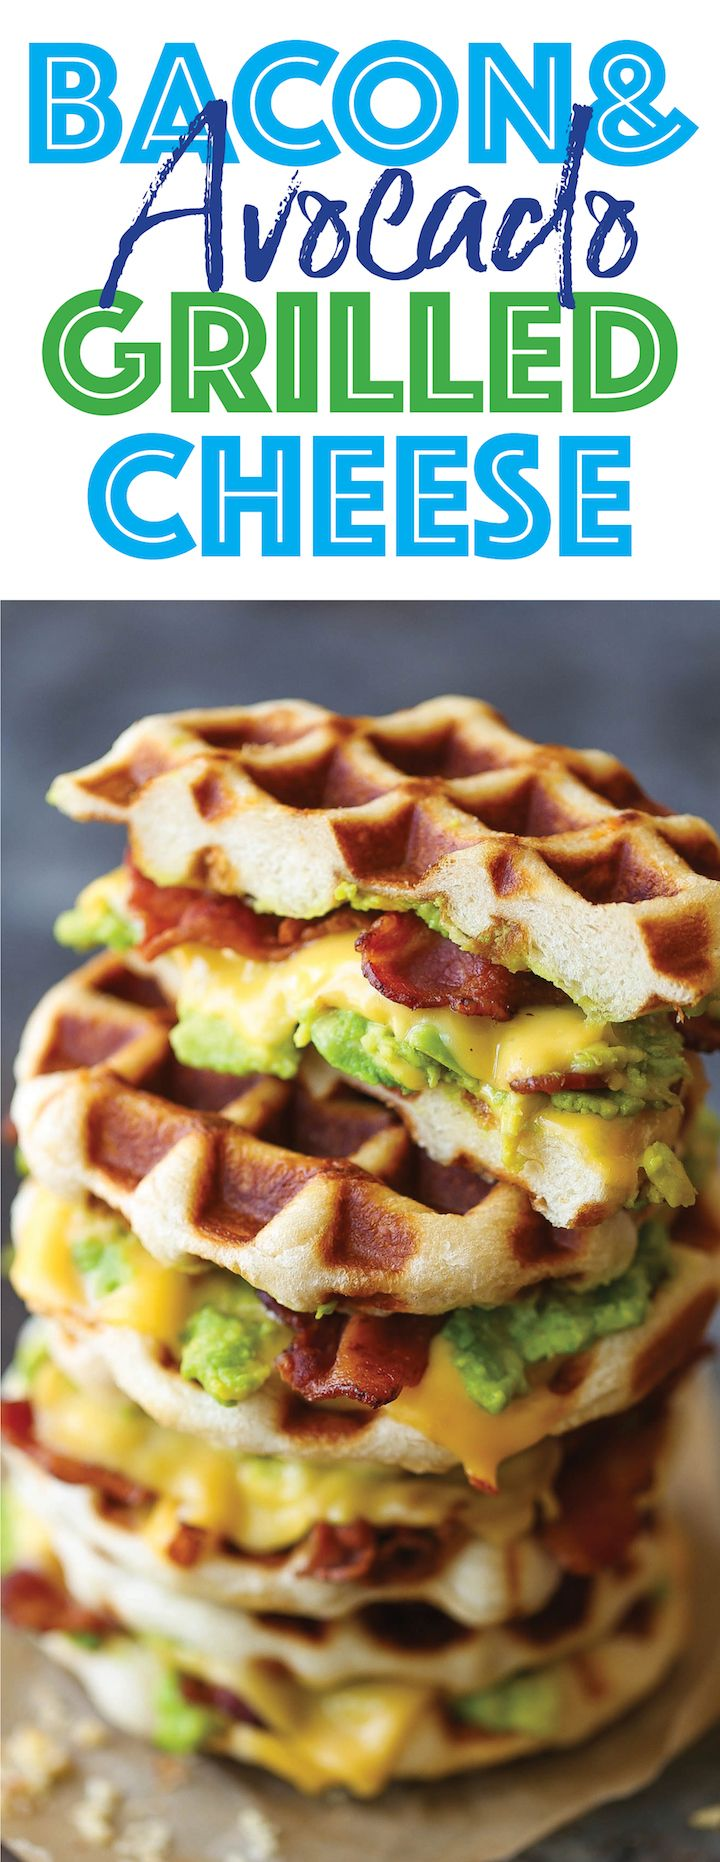 1559 best damn delicious images on pinterest bacon and avocado waffle grilled cheese avocado recipescinnamon recipesyummy recipeslunch recipesyummy foodhealthy forumfinder Images